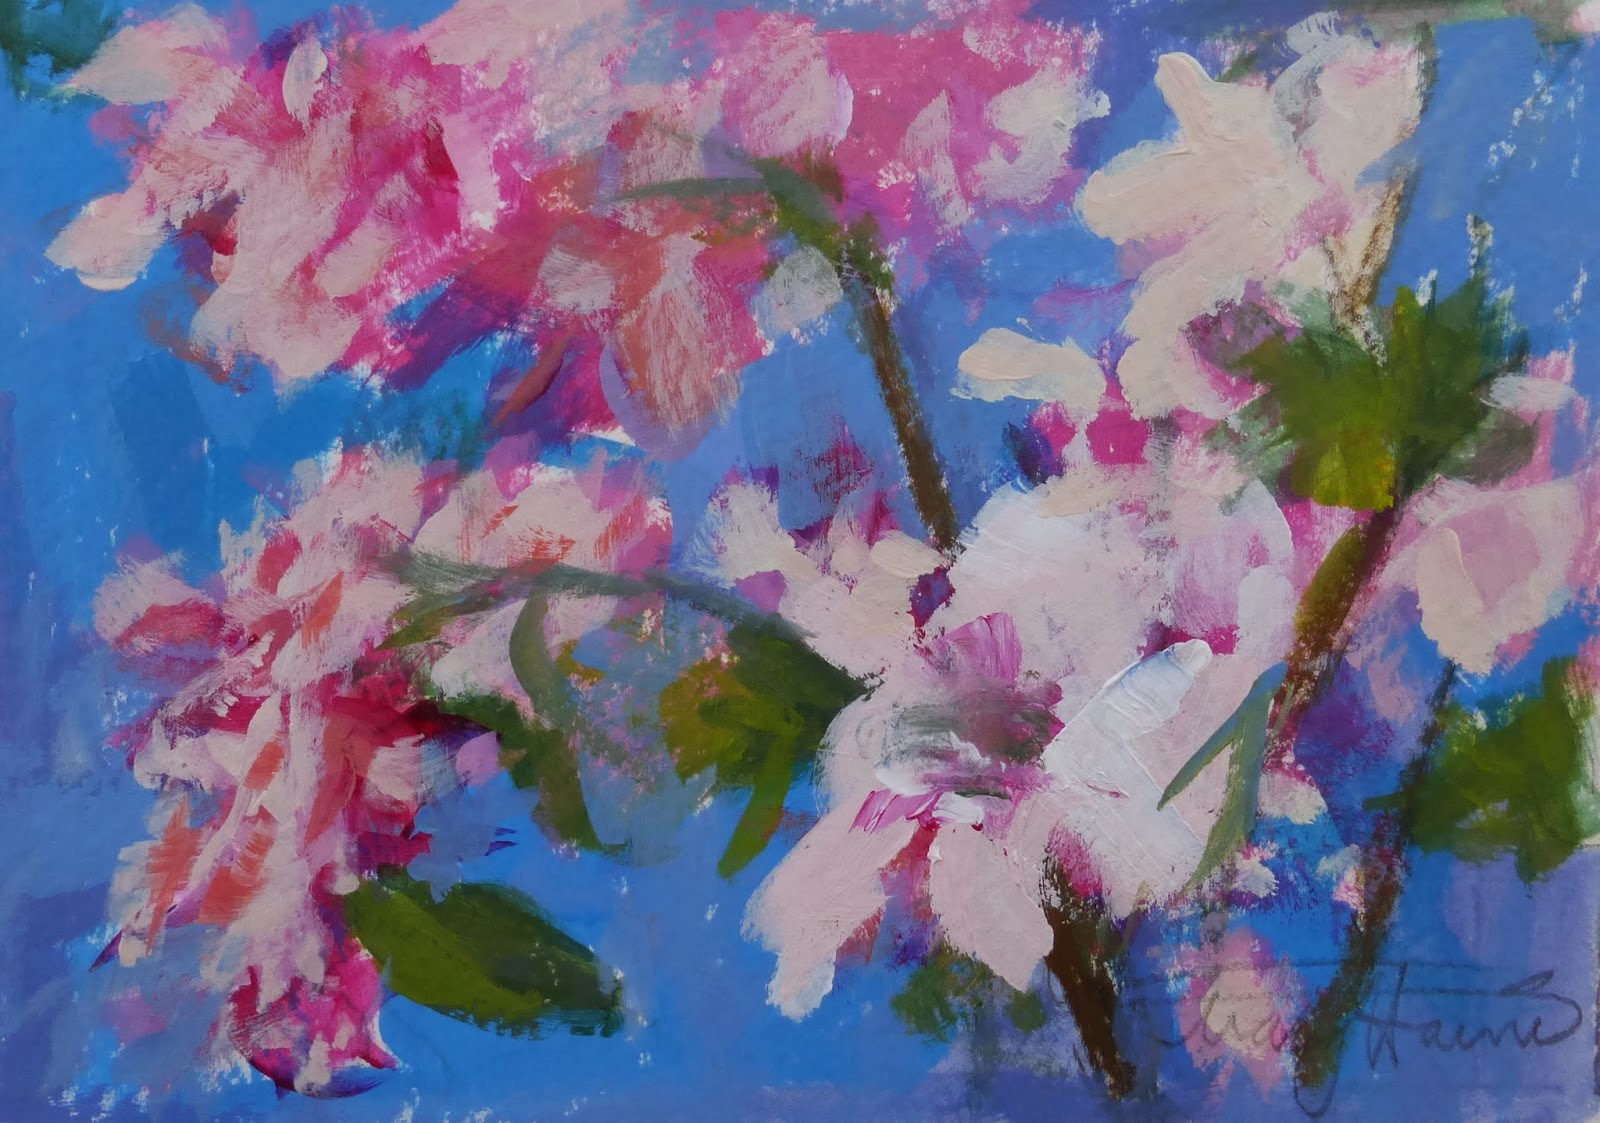 Fine watercolor art for sale - Blue And Pink Floral Is A 5x7 Acrylic And Pencil Abstract Sketch On 140 Lb Watercolor Paper Acrylic Paints Like Pastels Allow For The Brilliant Use Of